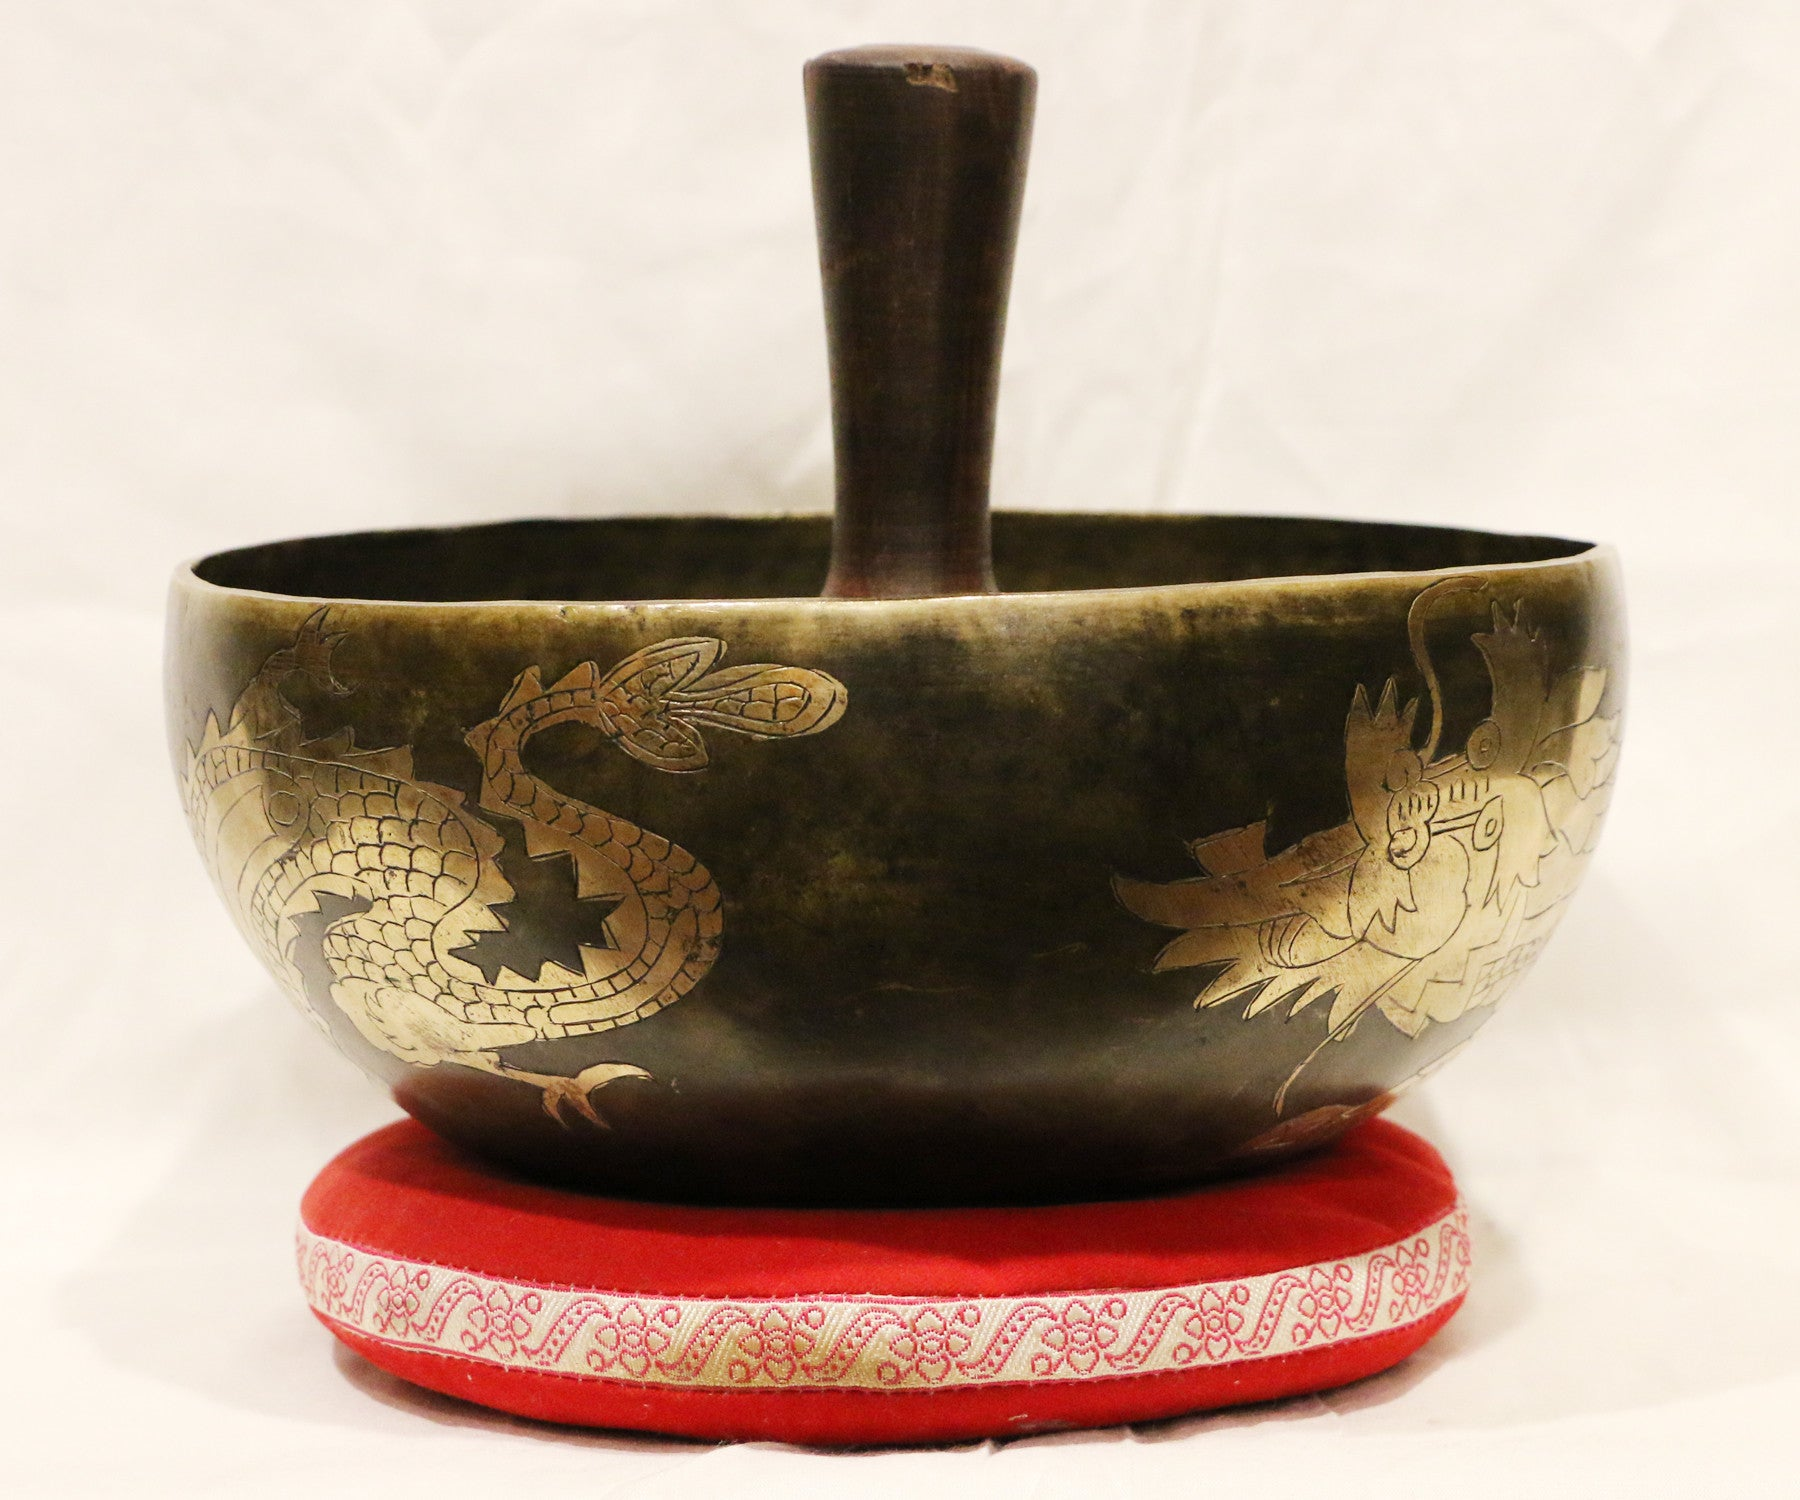 Old Dragon Healing Bawl - Tibet Arts & Healing